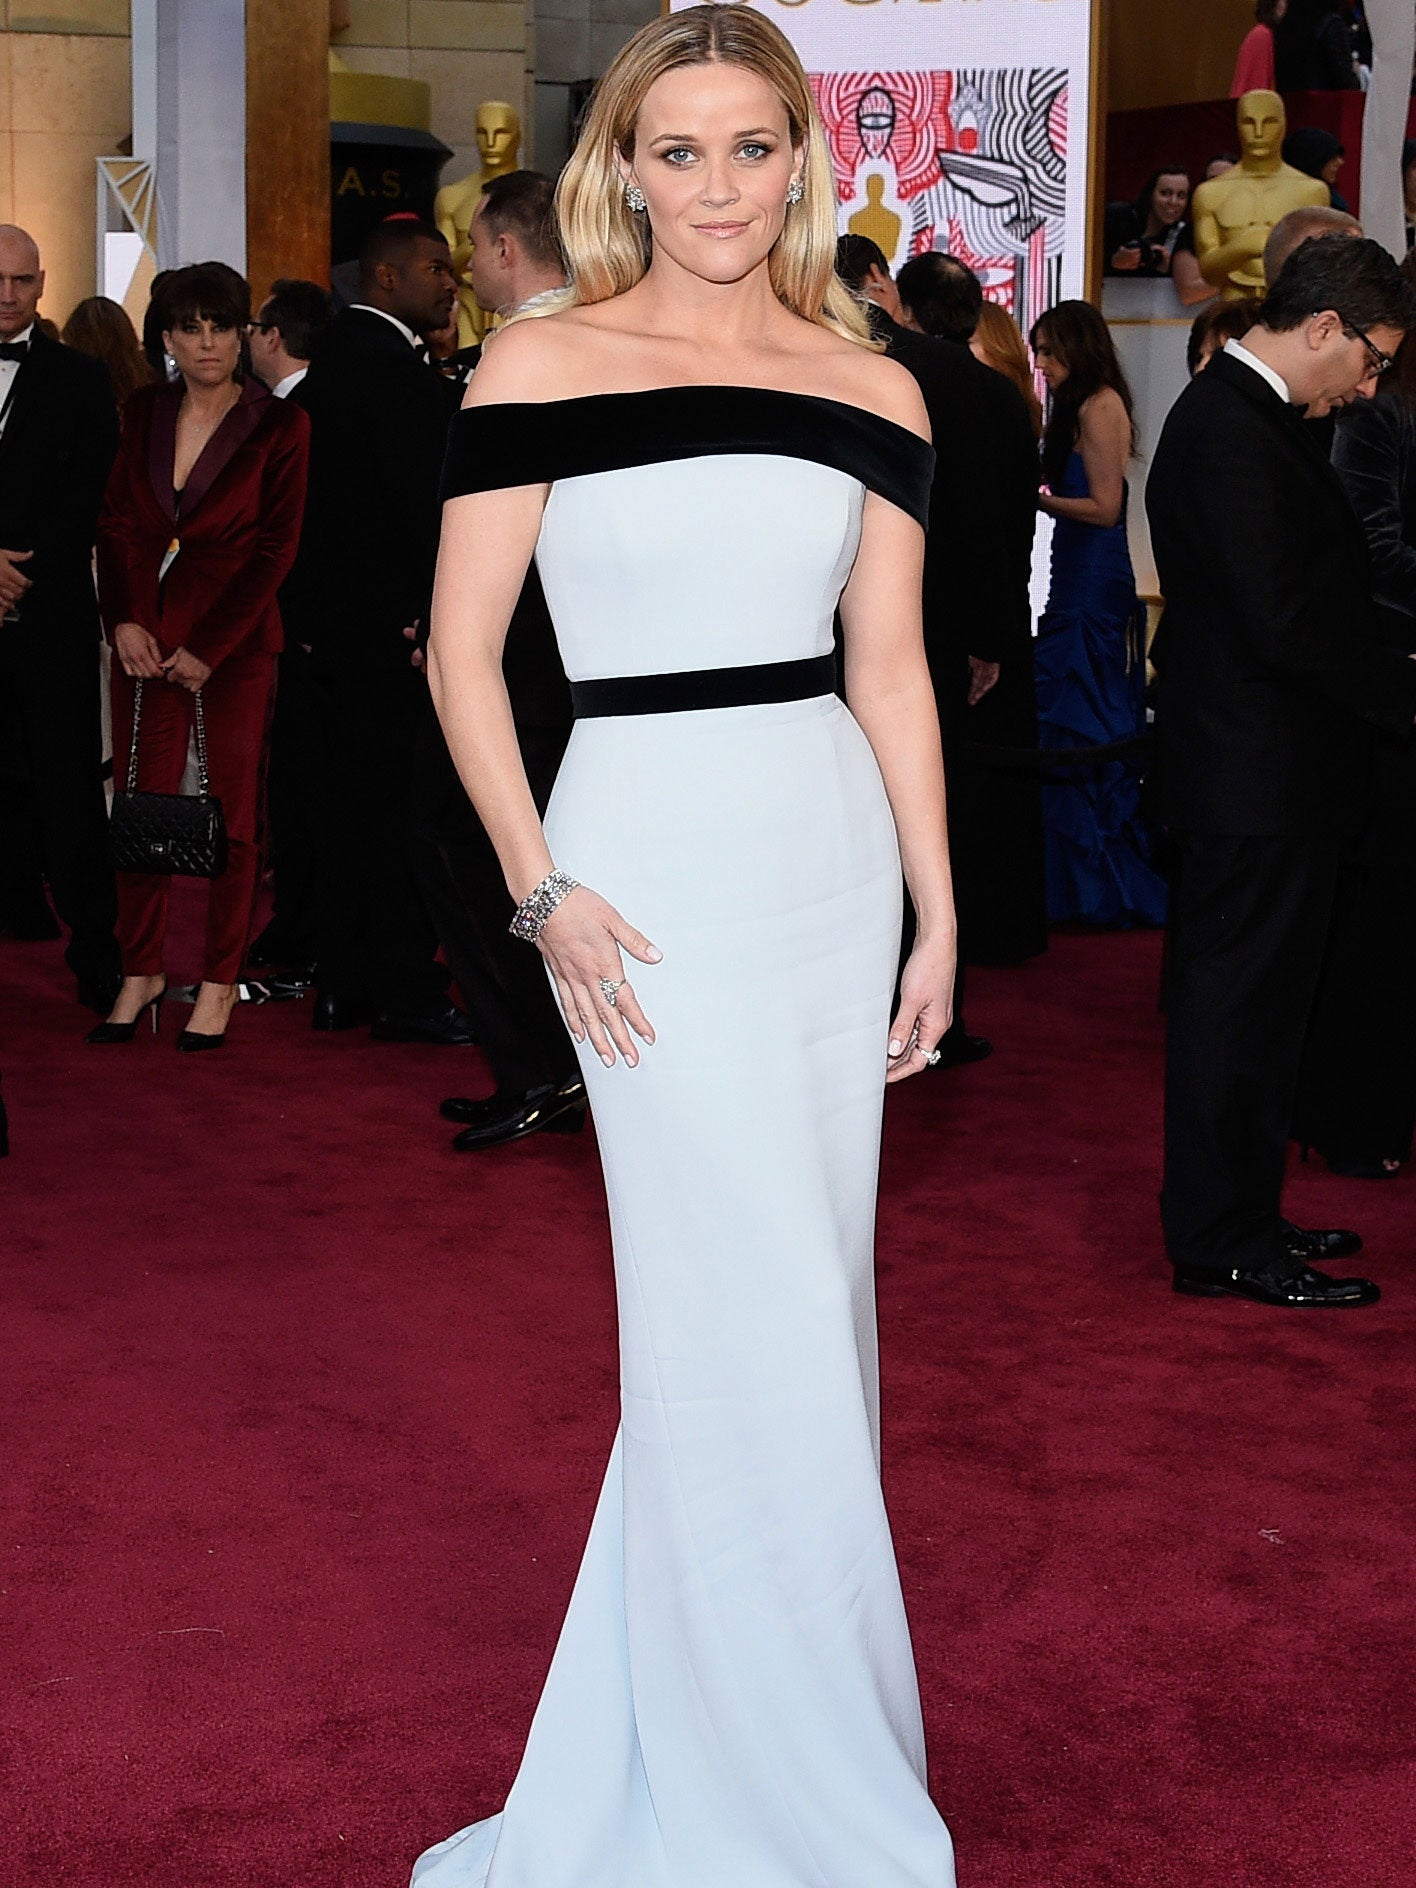 Tom Ford hits back at #AskHerMore red carpet dress controversy   The ...